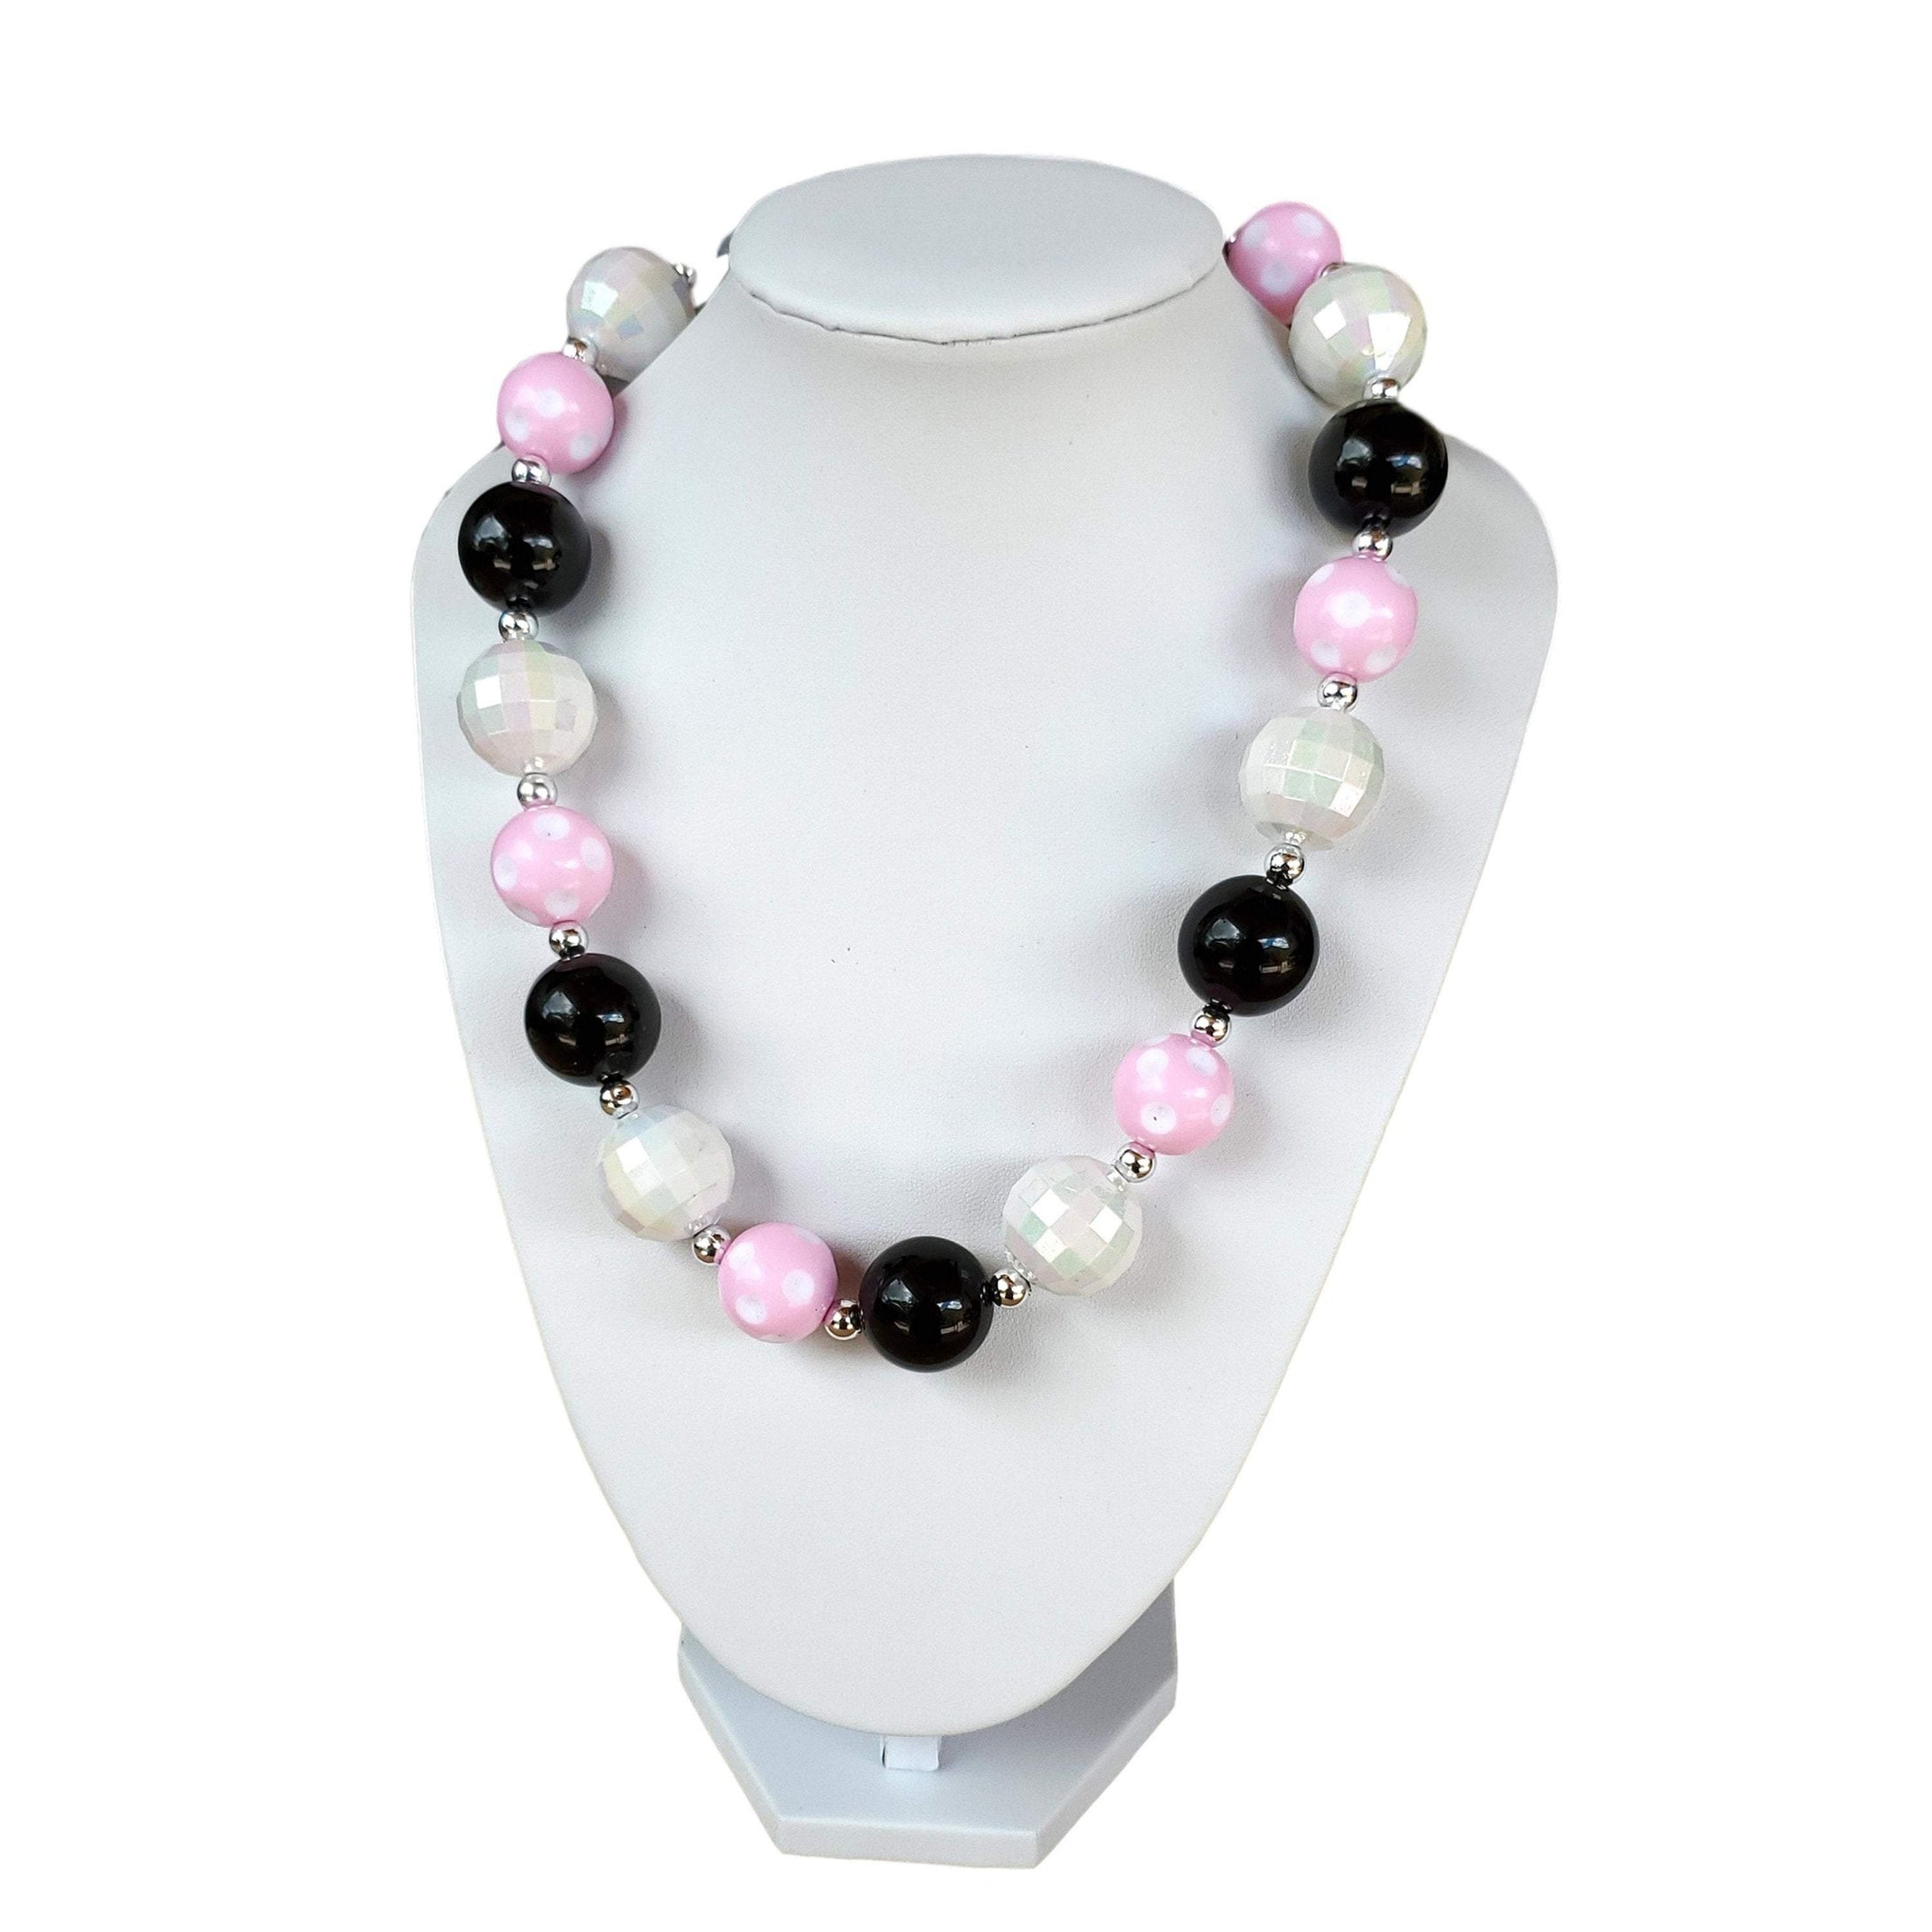 Chunky Bubble Gum Necklace for young girls and toddlers.